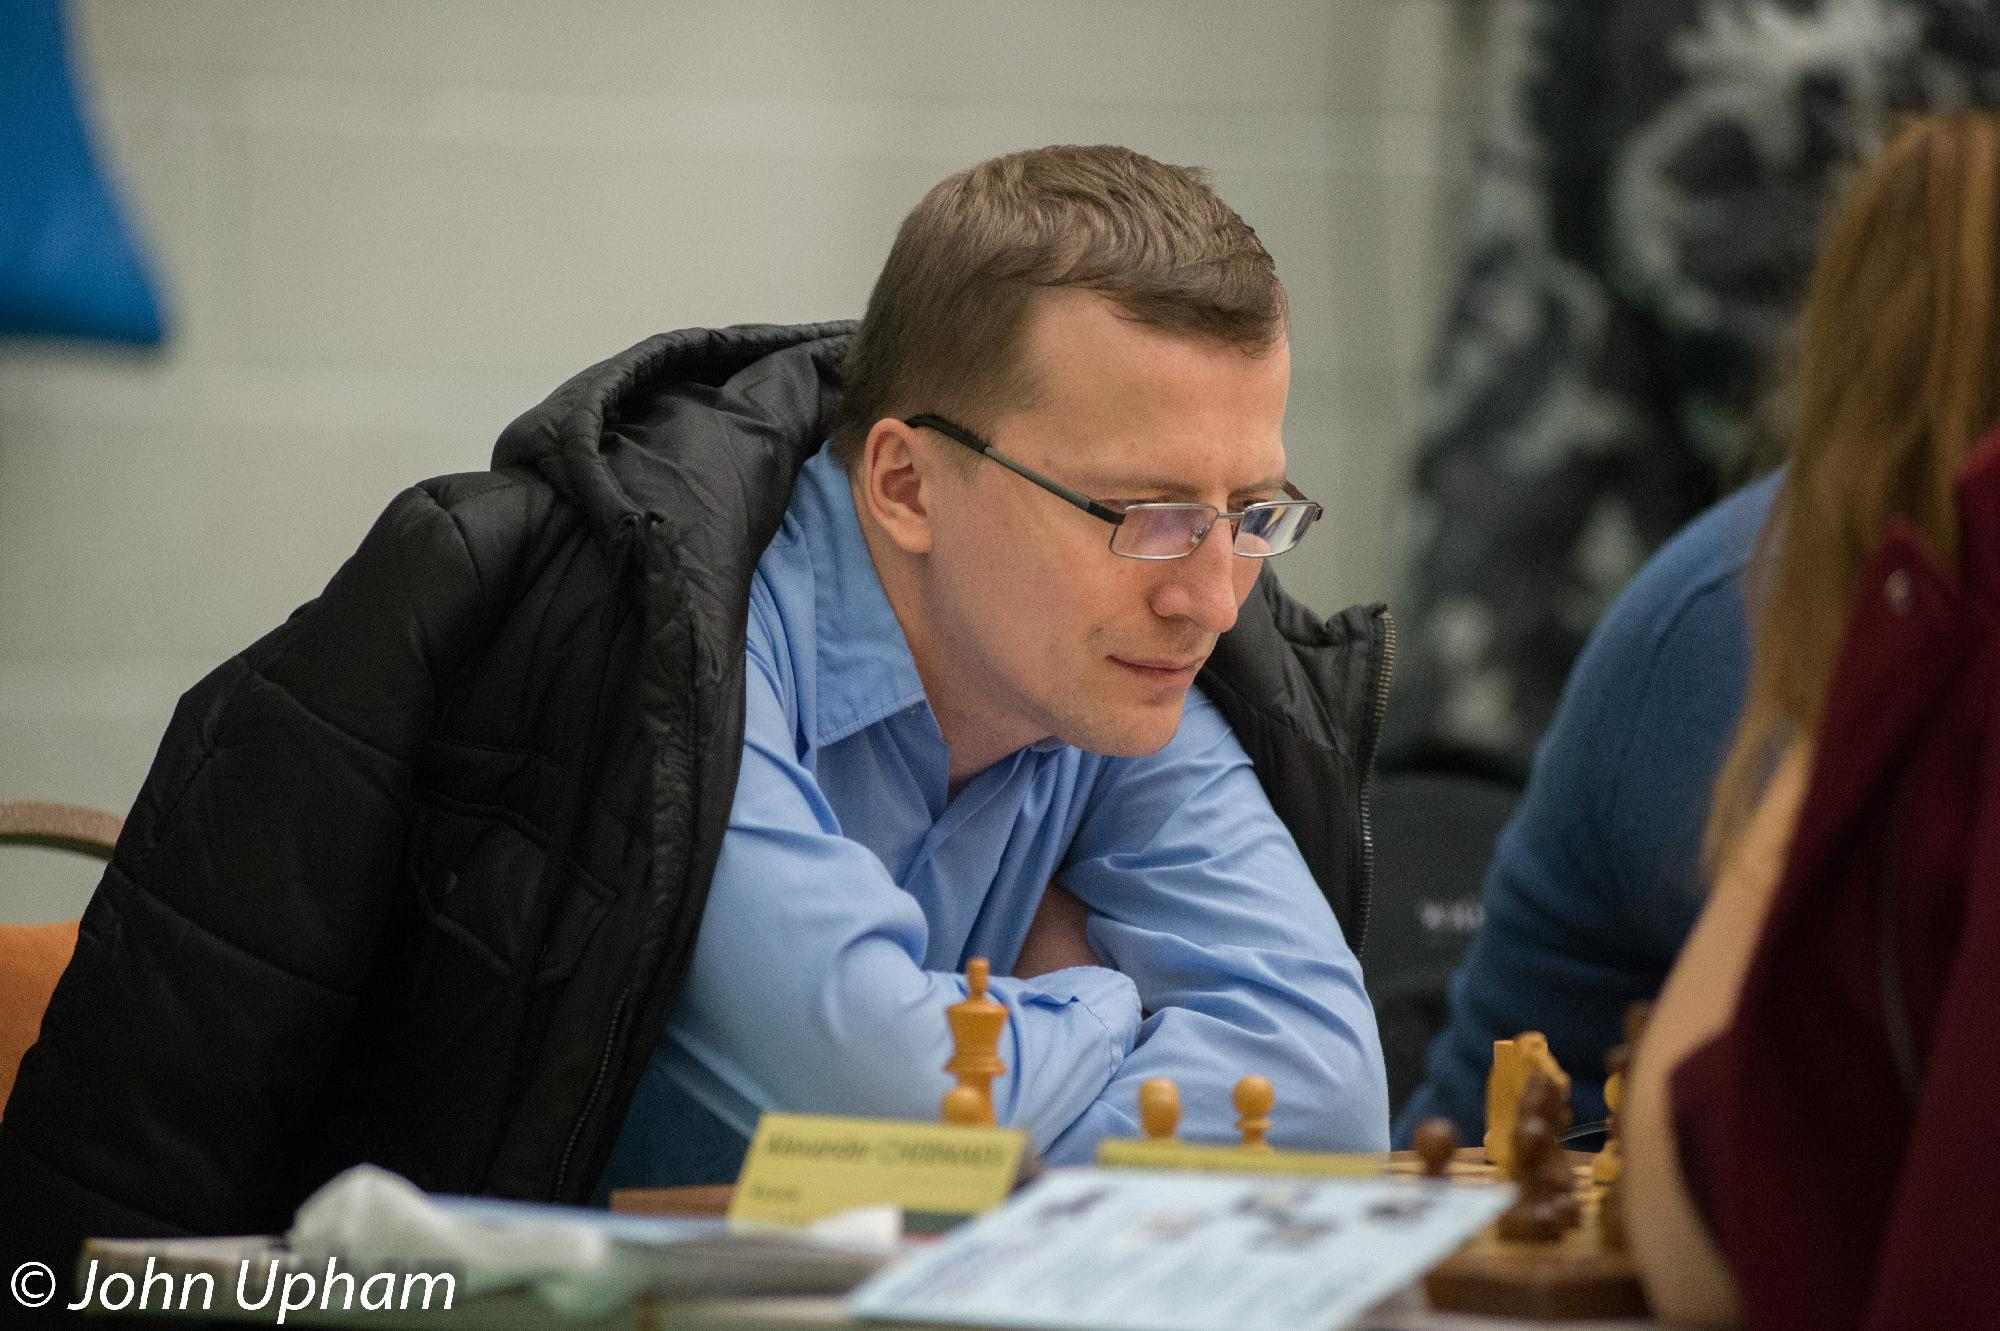 GM Alexander Cherniaev, Hastings 2013-2014, courtesy of John Upham Photography